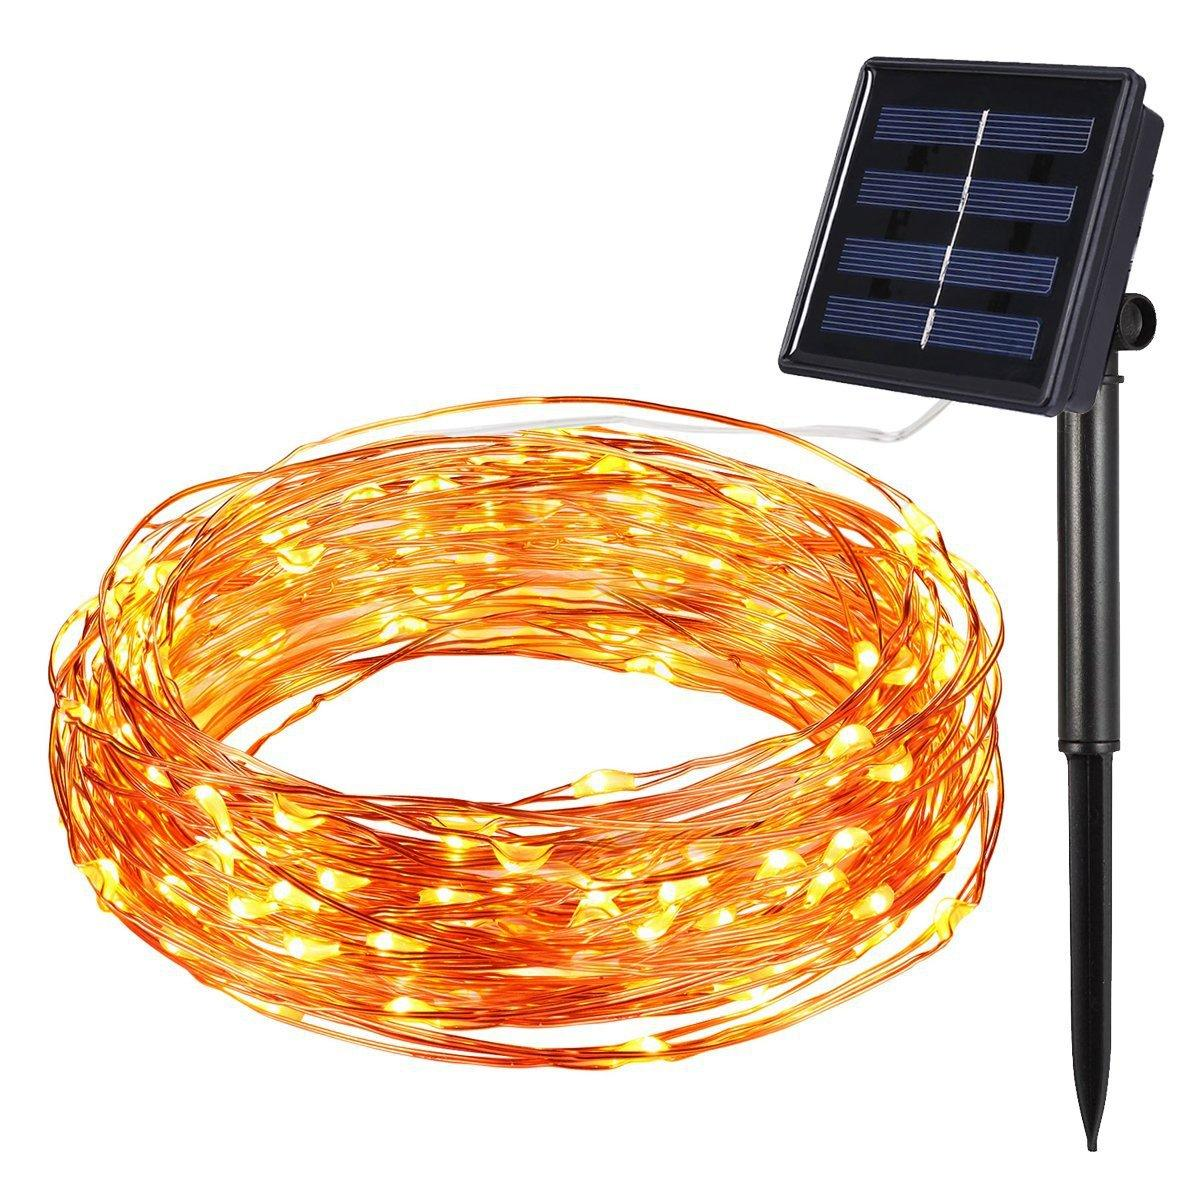 100LED solar lamp string Christmas light string wire festival decoration series outdoor waterproof LED lamp